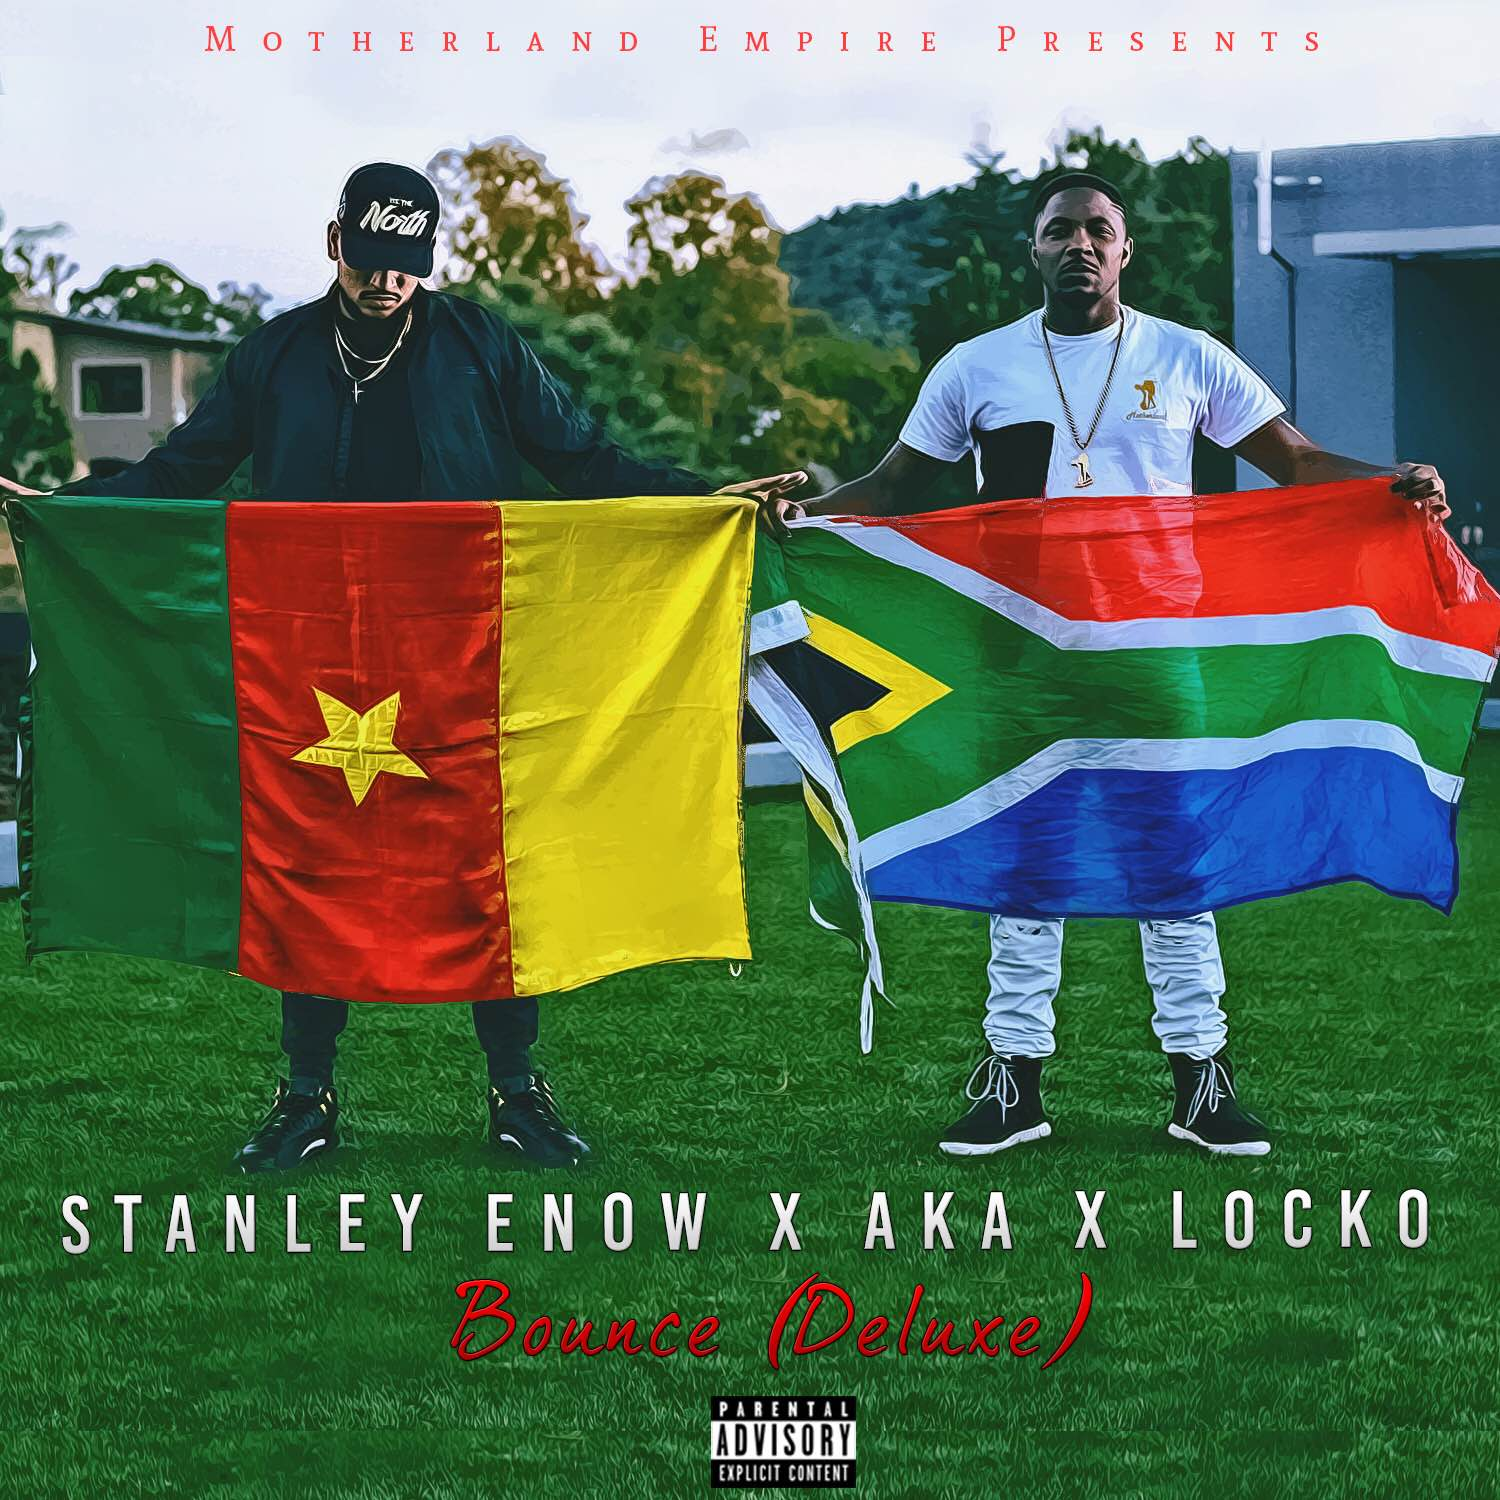 Stanley-Enow-and-AKA